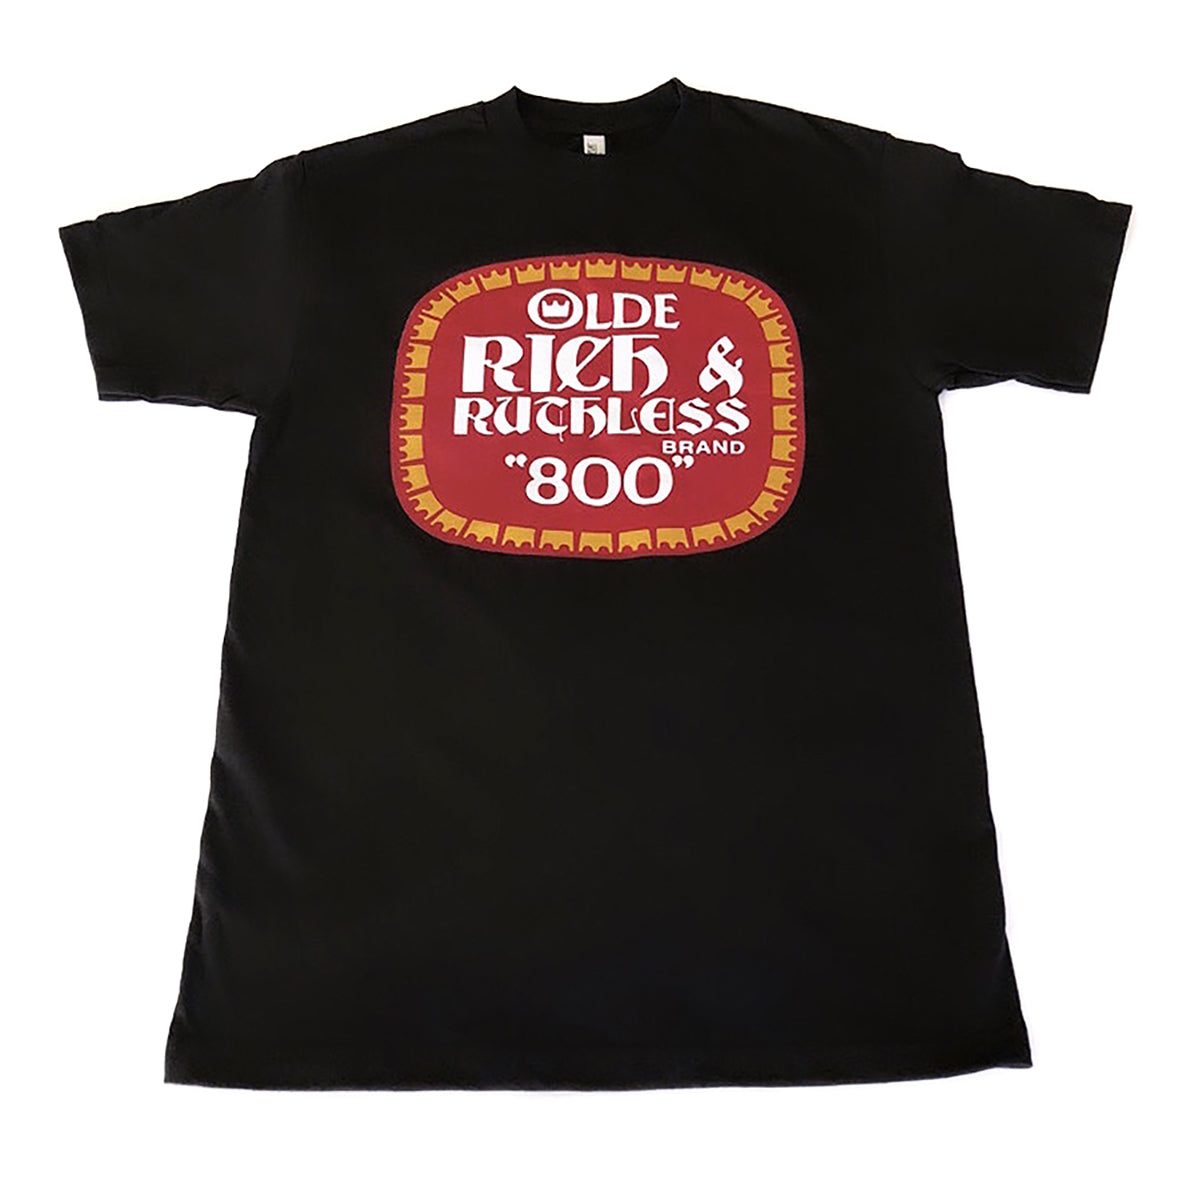 "Olde Rich & Ruthless ""800"" T-Shirt (Black)"